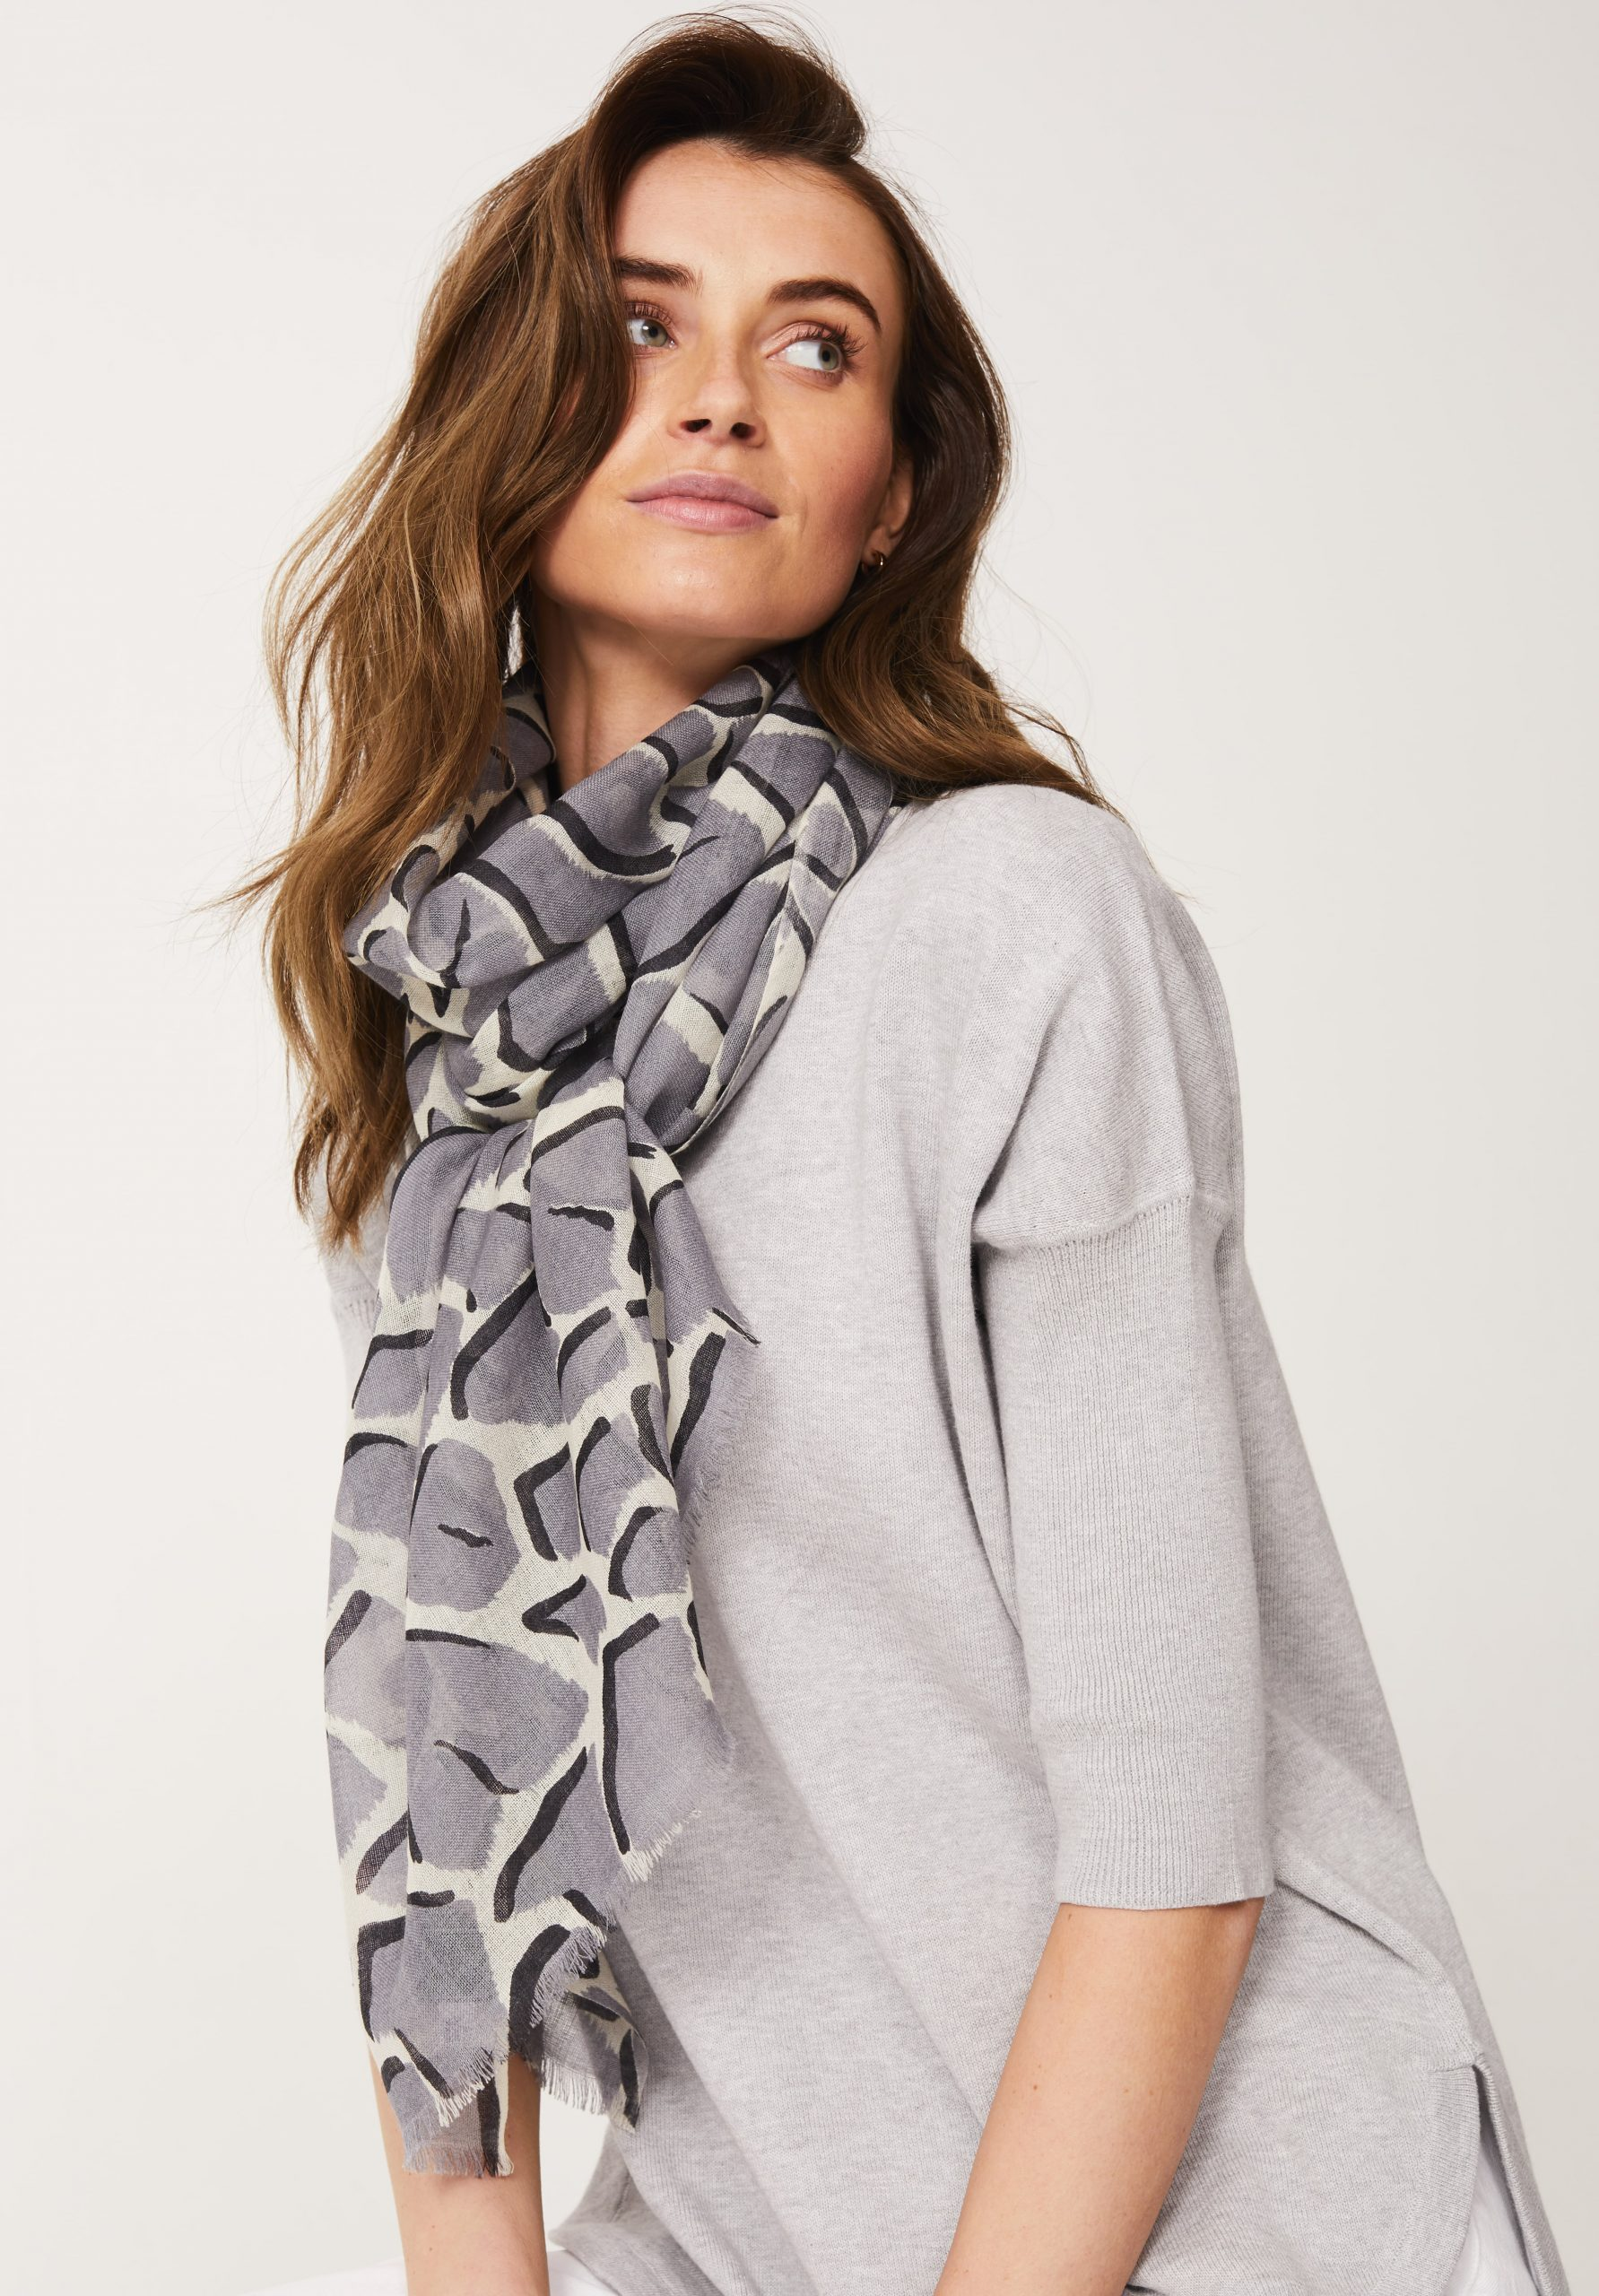 Giraffe Print Scarf in Grey